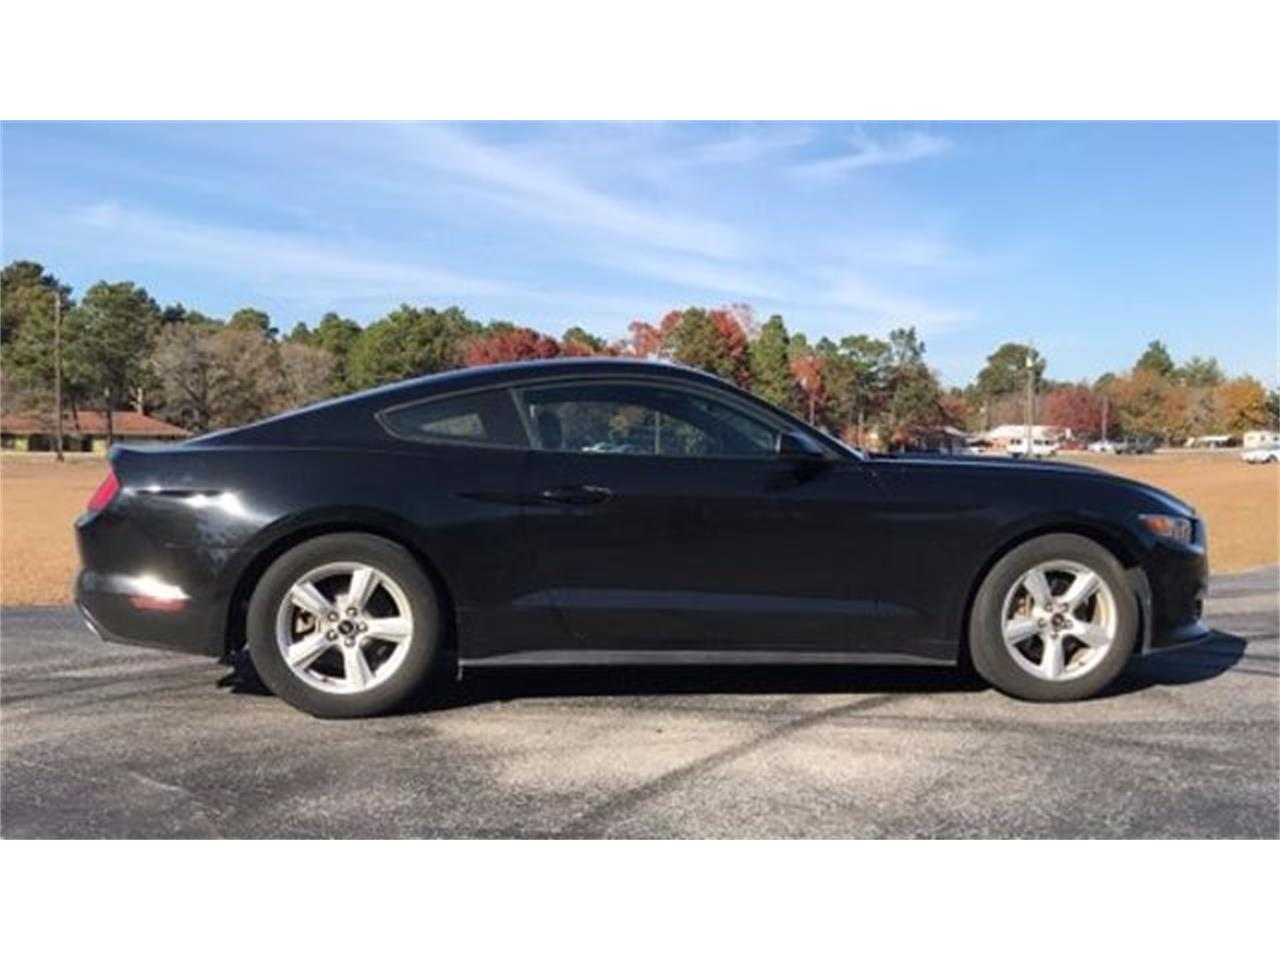 Large Picture of 2016 Mustang located in North Carolina - $19,995.00 - MFZO